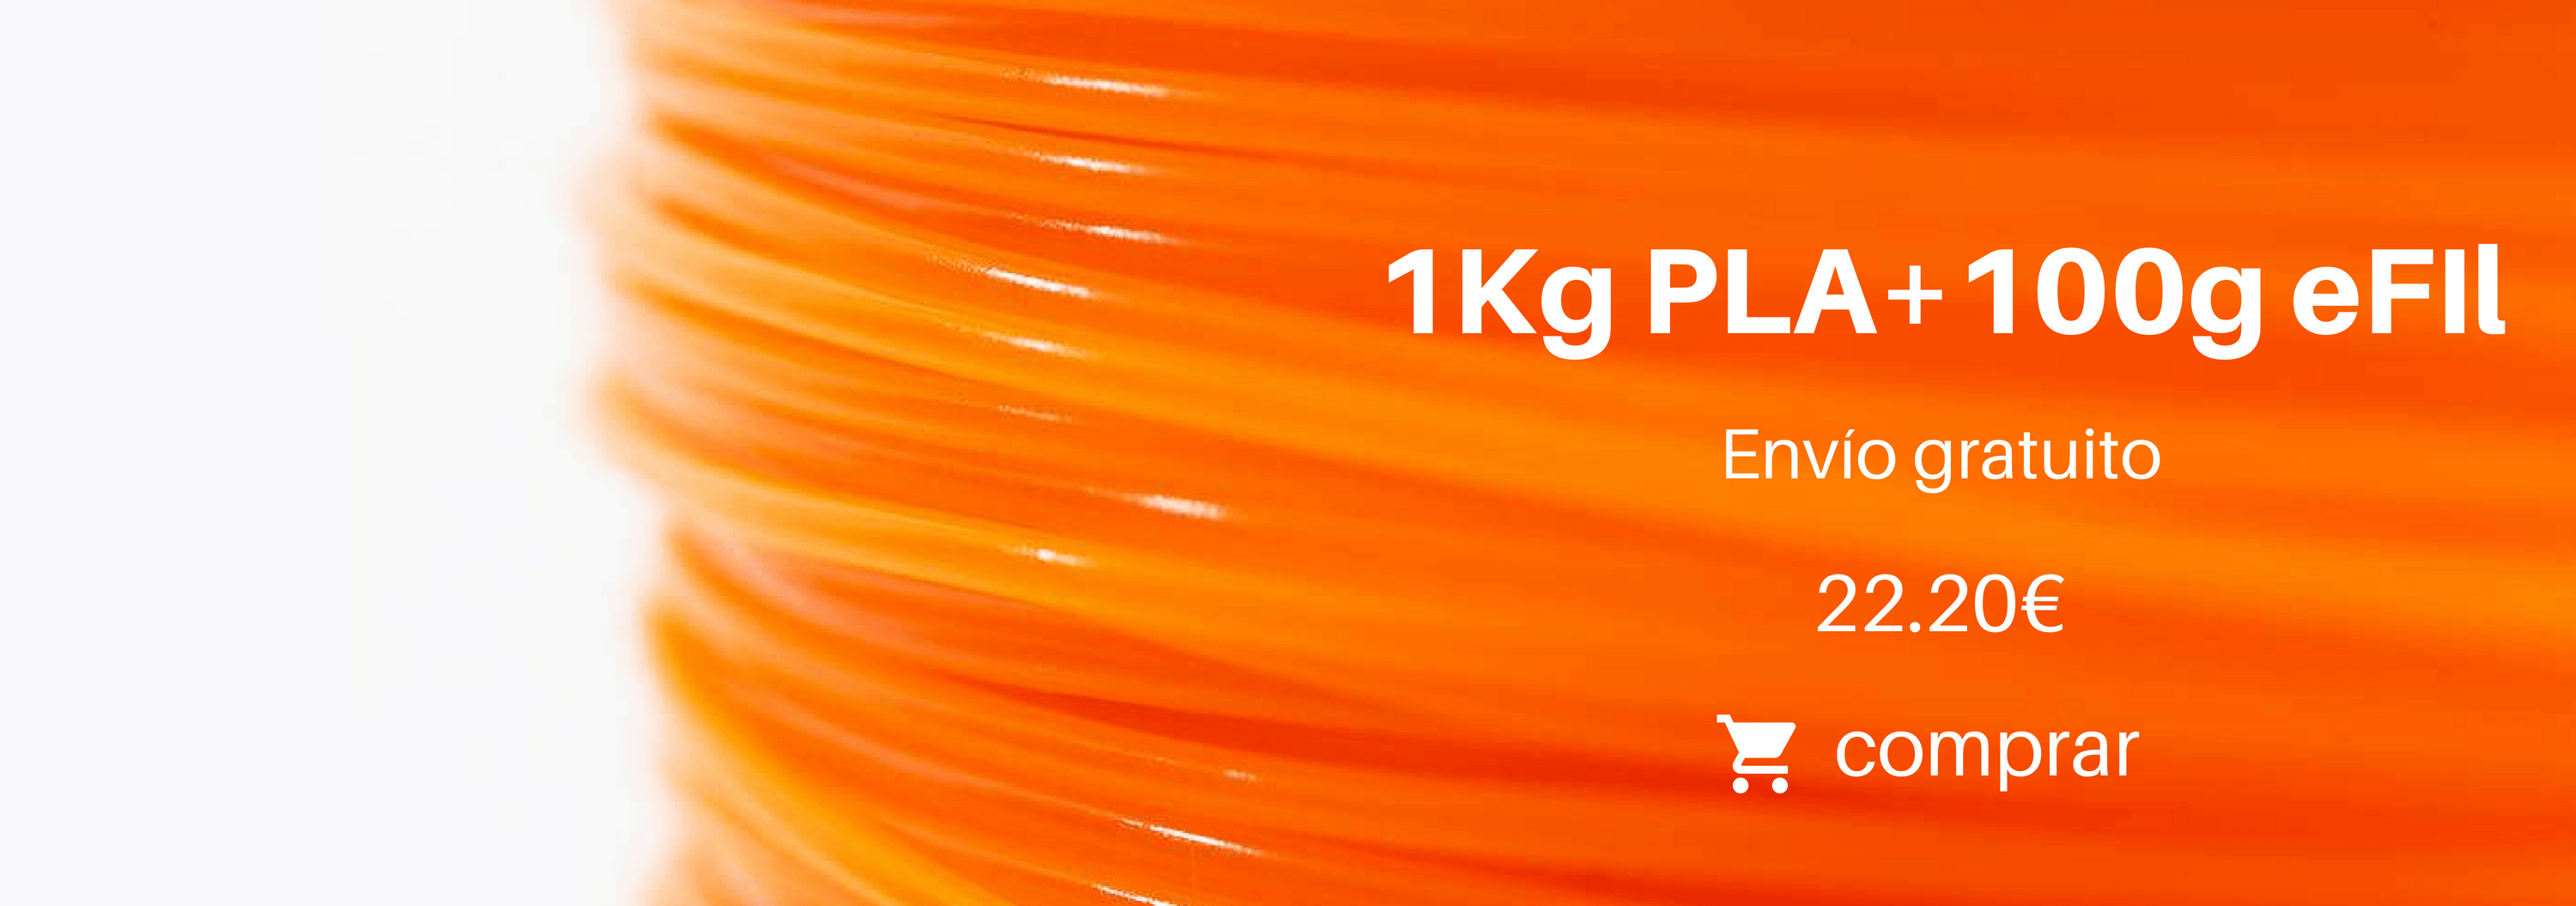 Pack more flexible filament efil